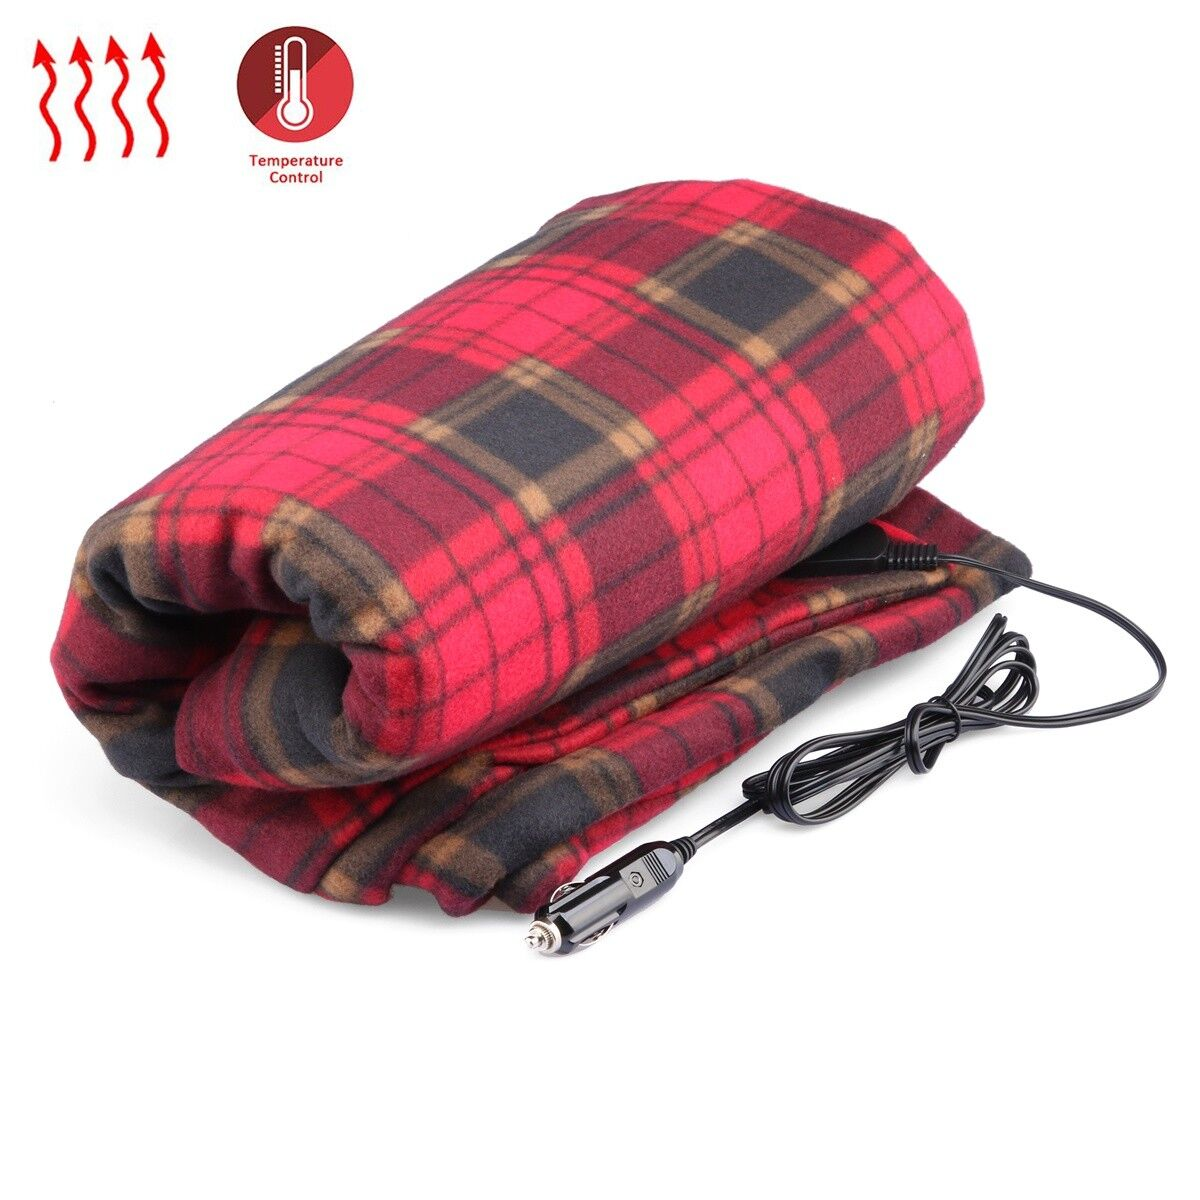 12-Volt Heated Travel Blanket (Red Plaid, 59  x 43 ) with Patented Safety Timer